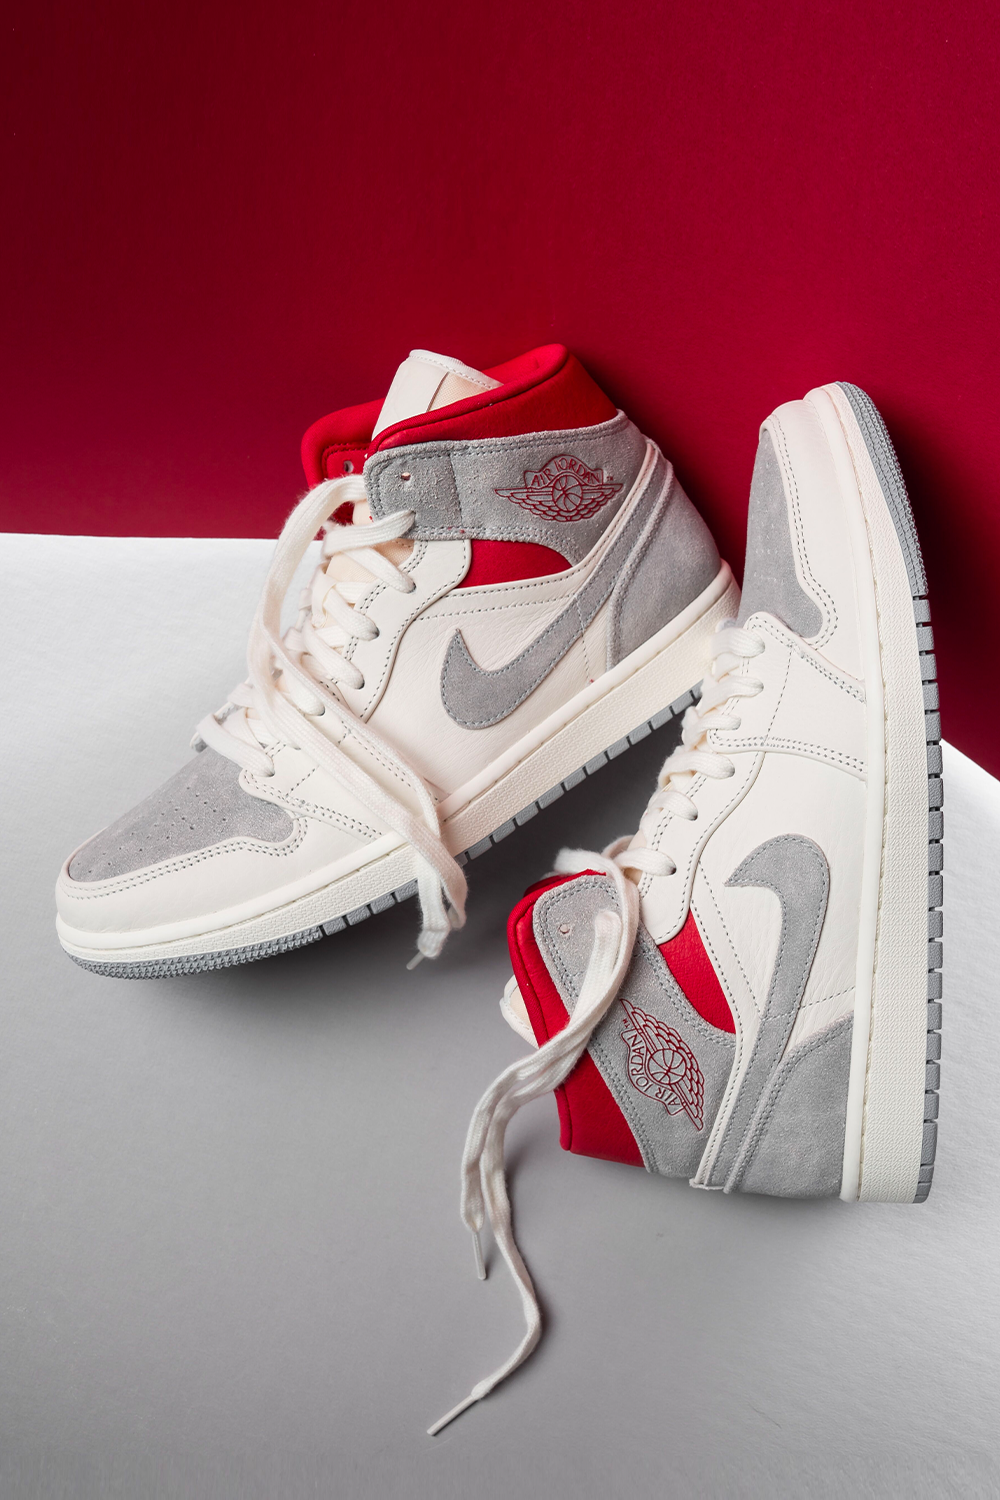 Air Jordan 1 Mid SNS Anniversary in 2020 (With images